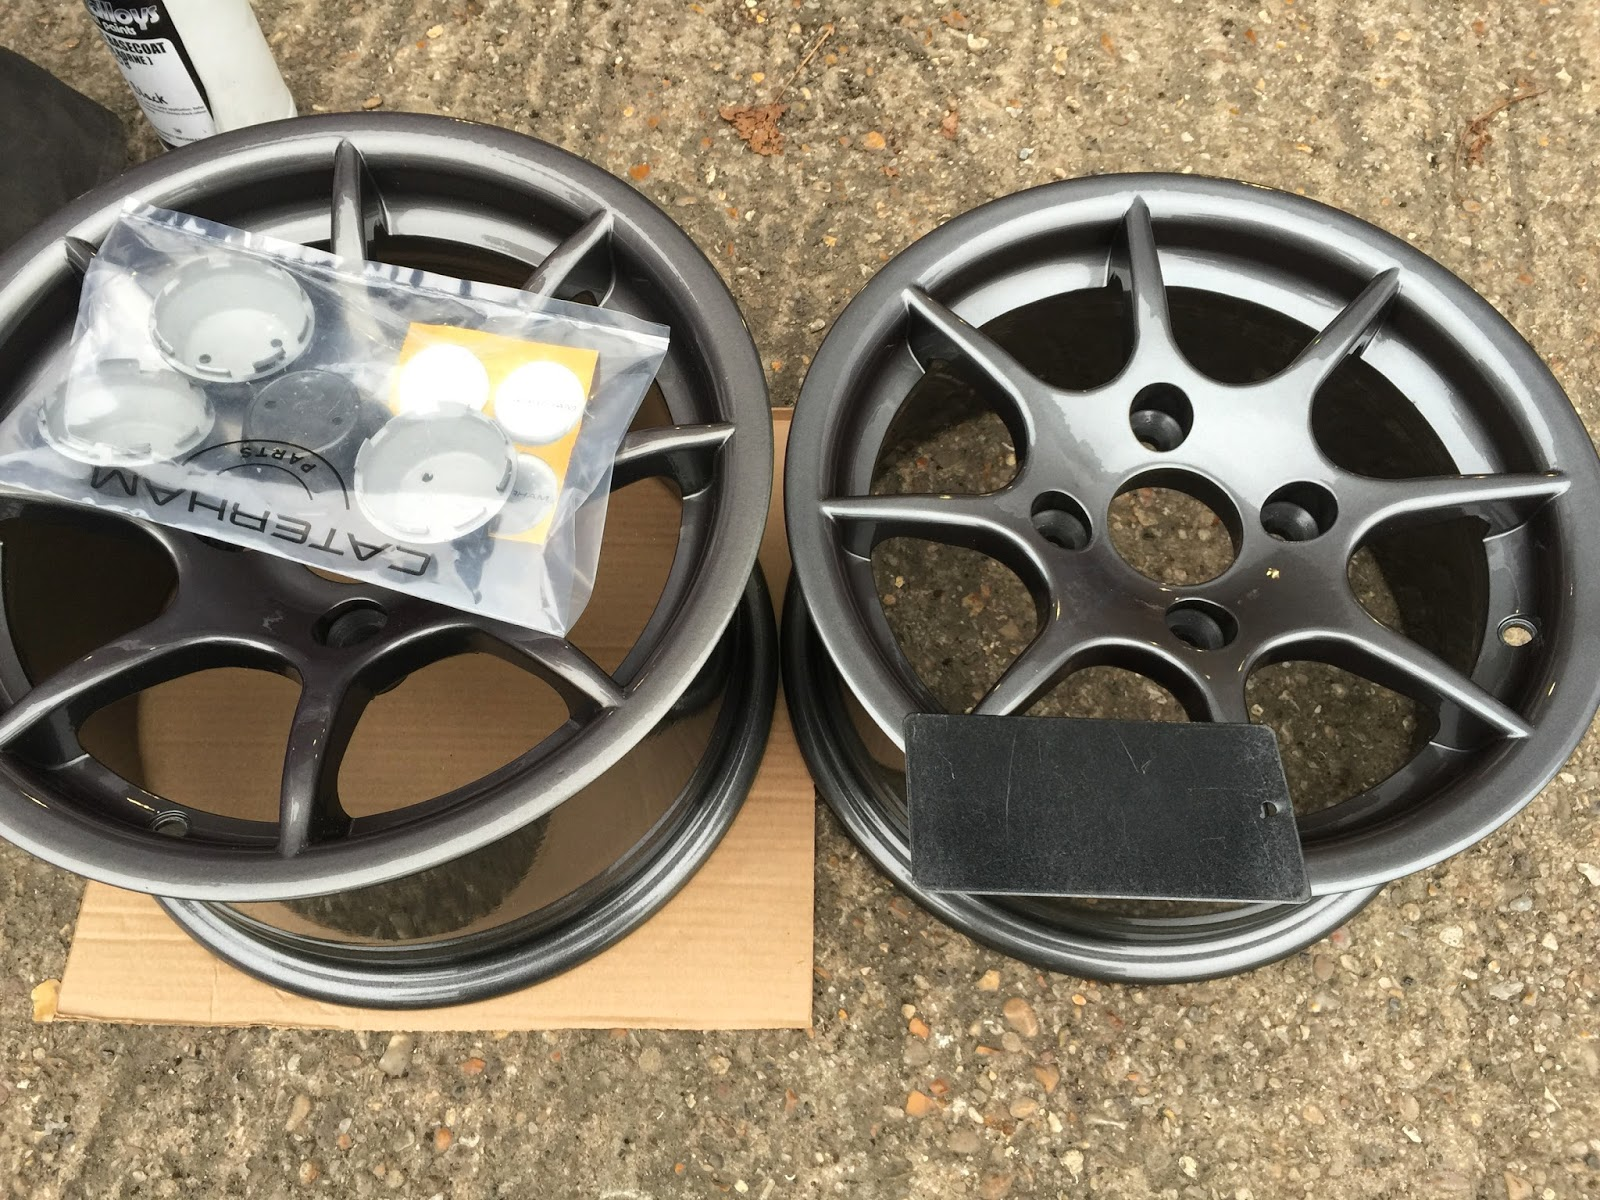 "Caterham R500 8 spoke 13"" wheels in factory finish anthracite grey."